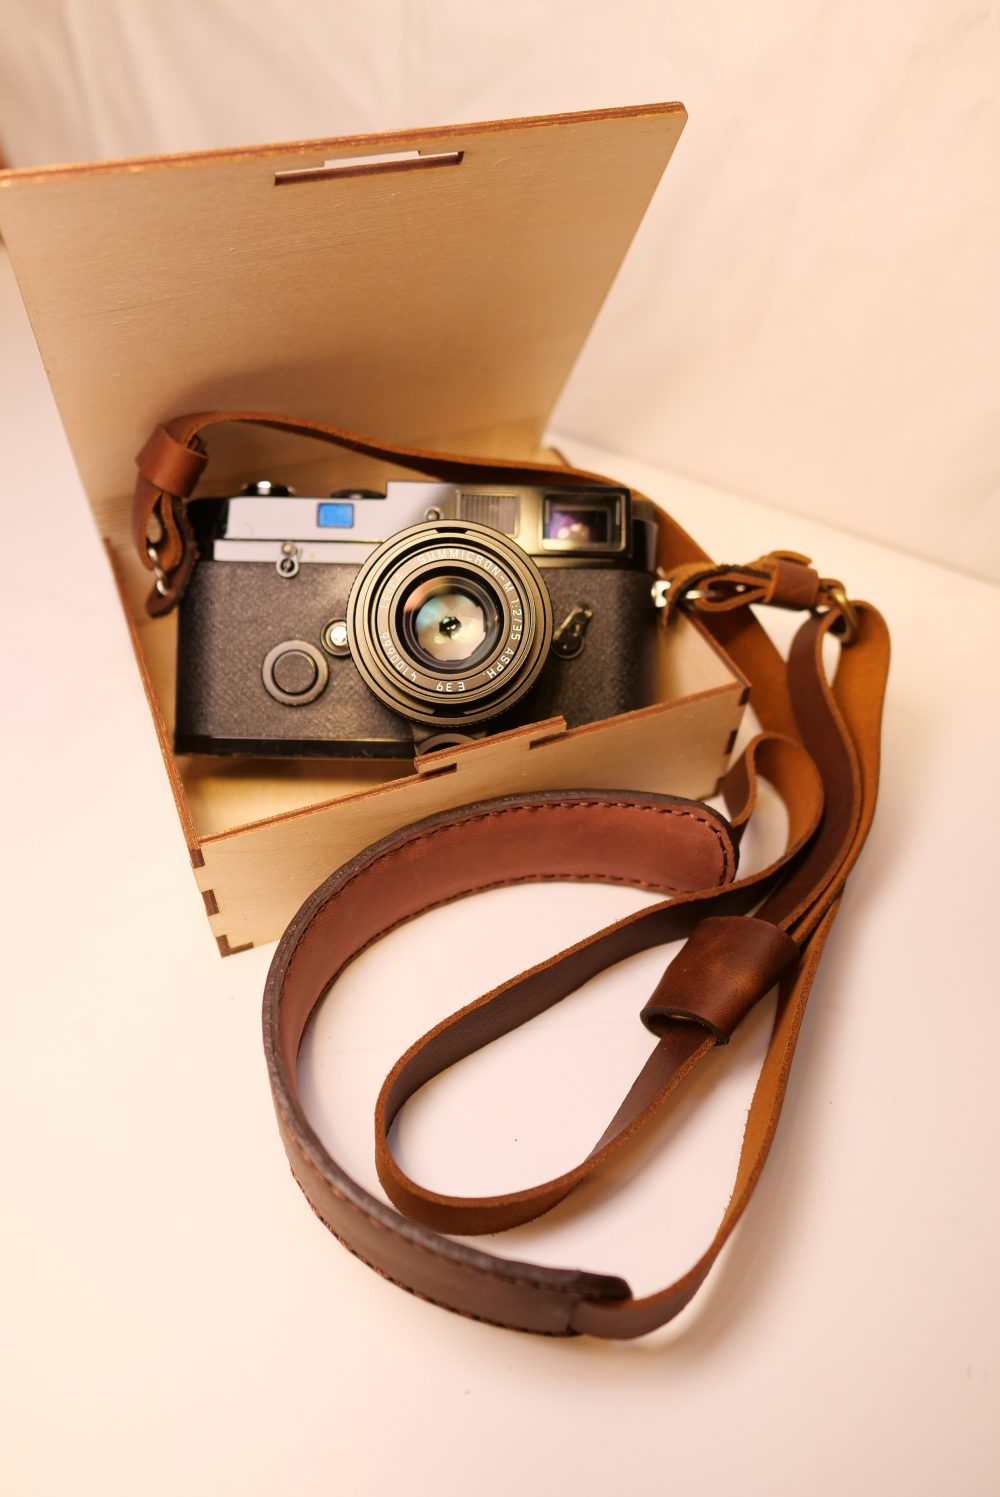 Henri Shoulder Strap (CREMA BROWN) on Leica MP, with Wooden Serpent box (Leica not included)